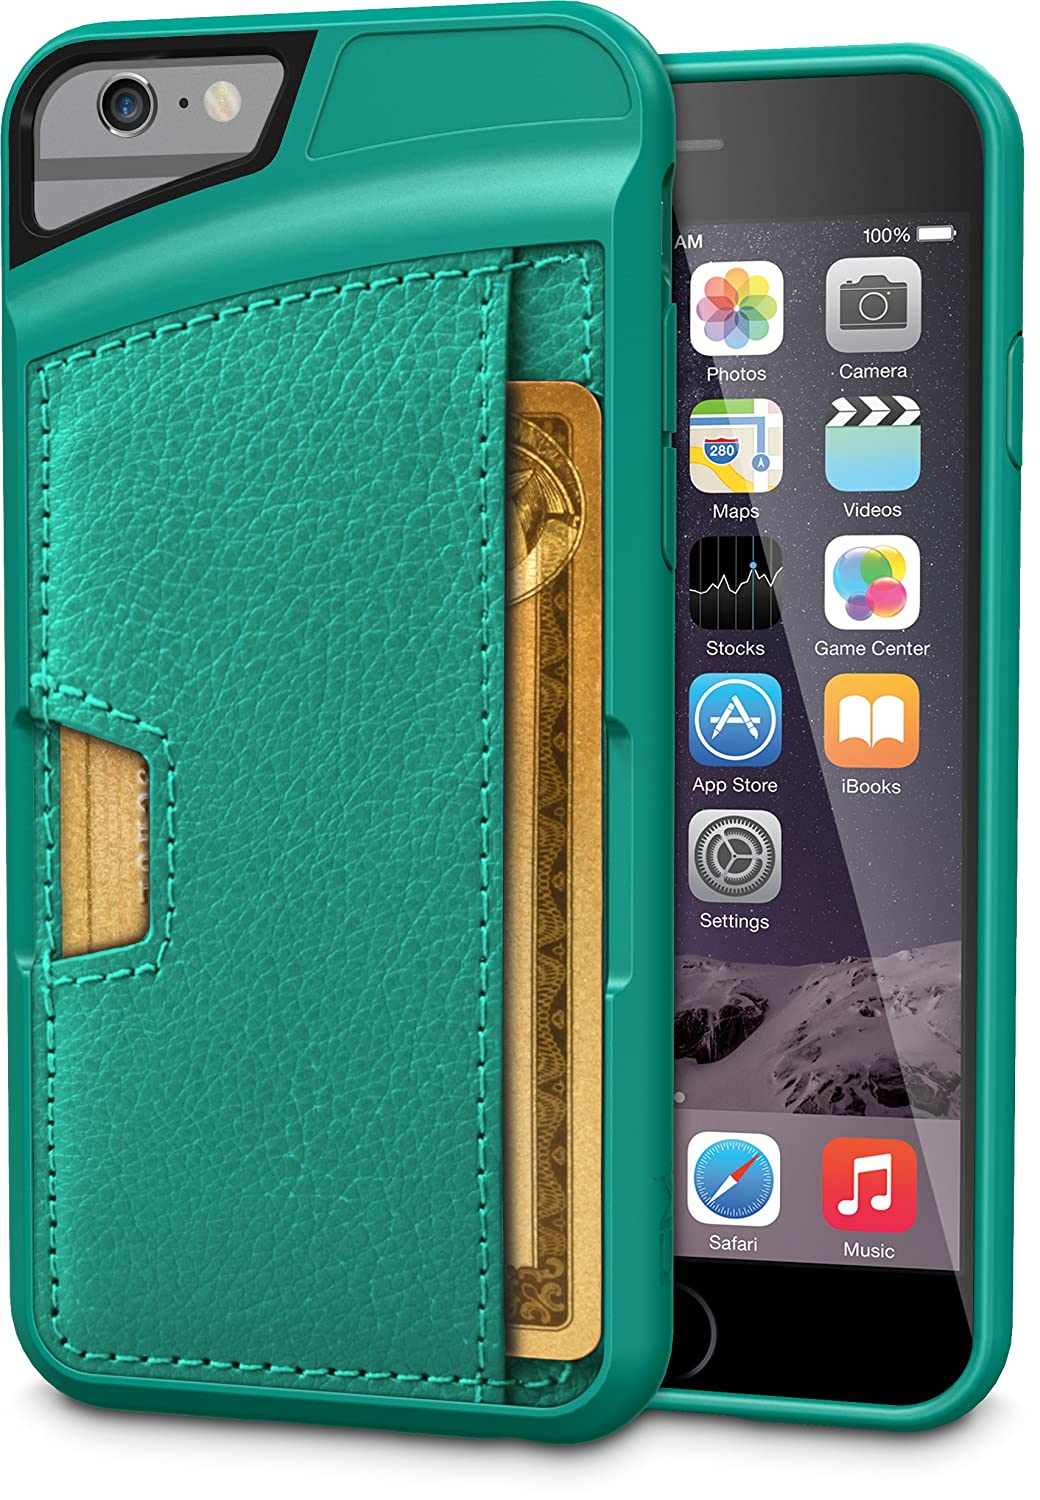 iPhone 6 Wallet Case - Q Card Case for iPhone 6 (4.7 inches) by CM4 - Ultra Slim Protective Carrying Case (Pacific Green)